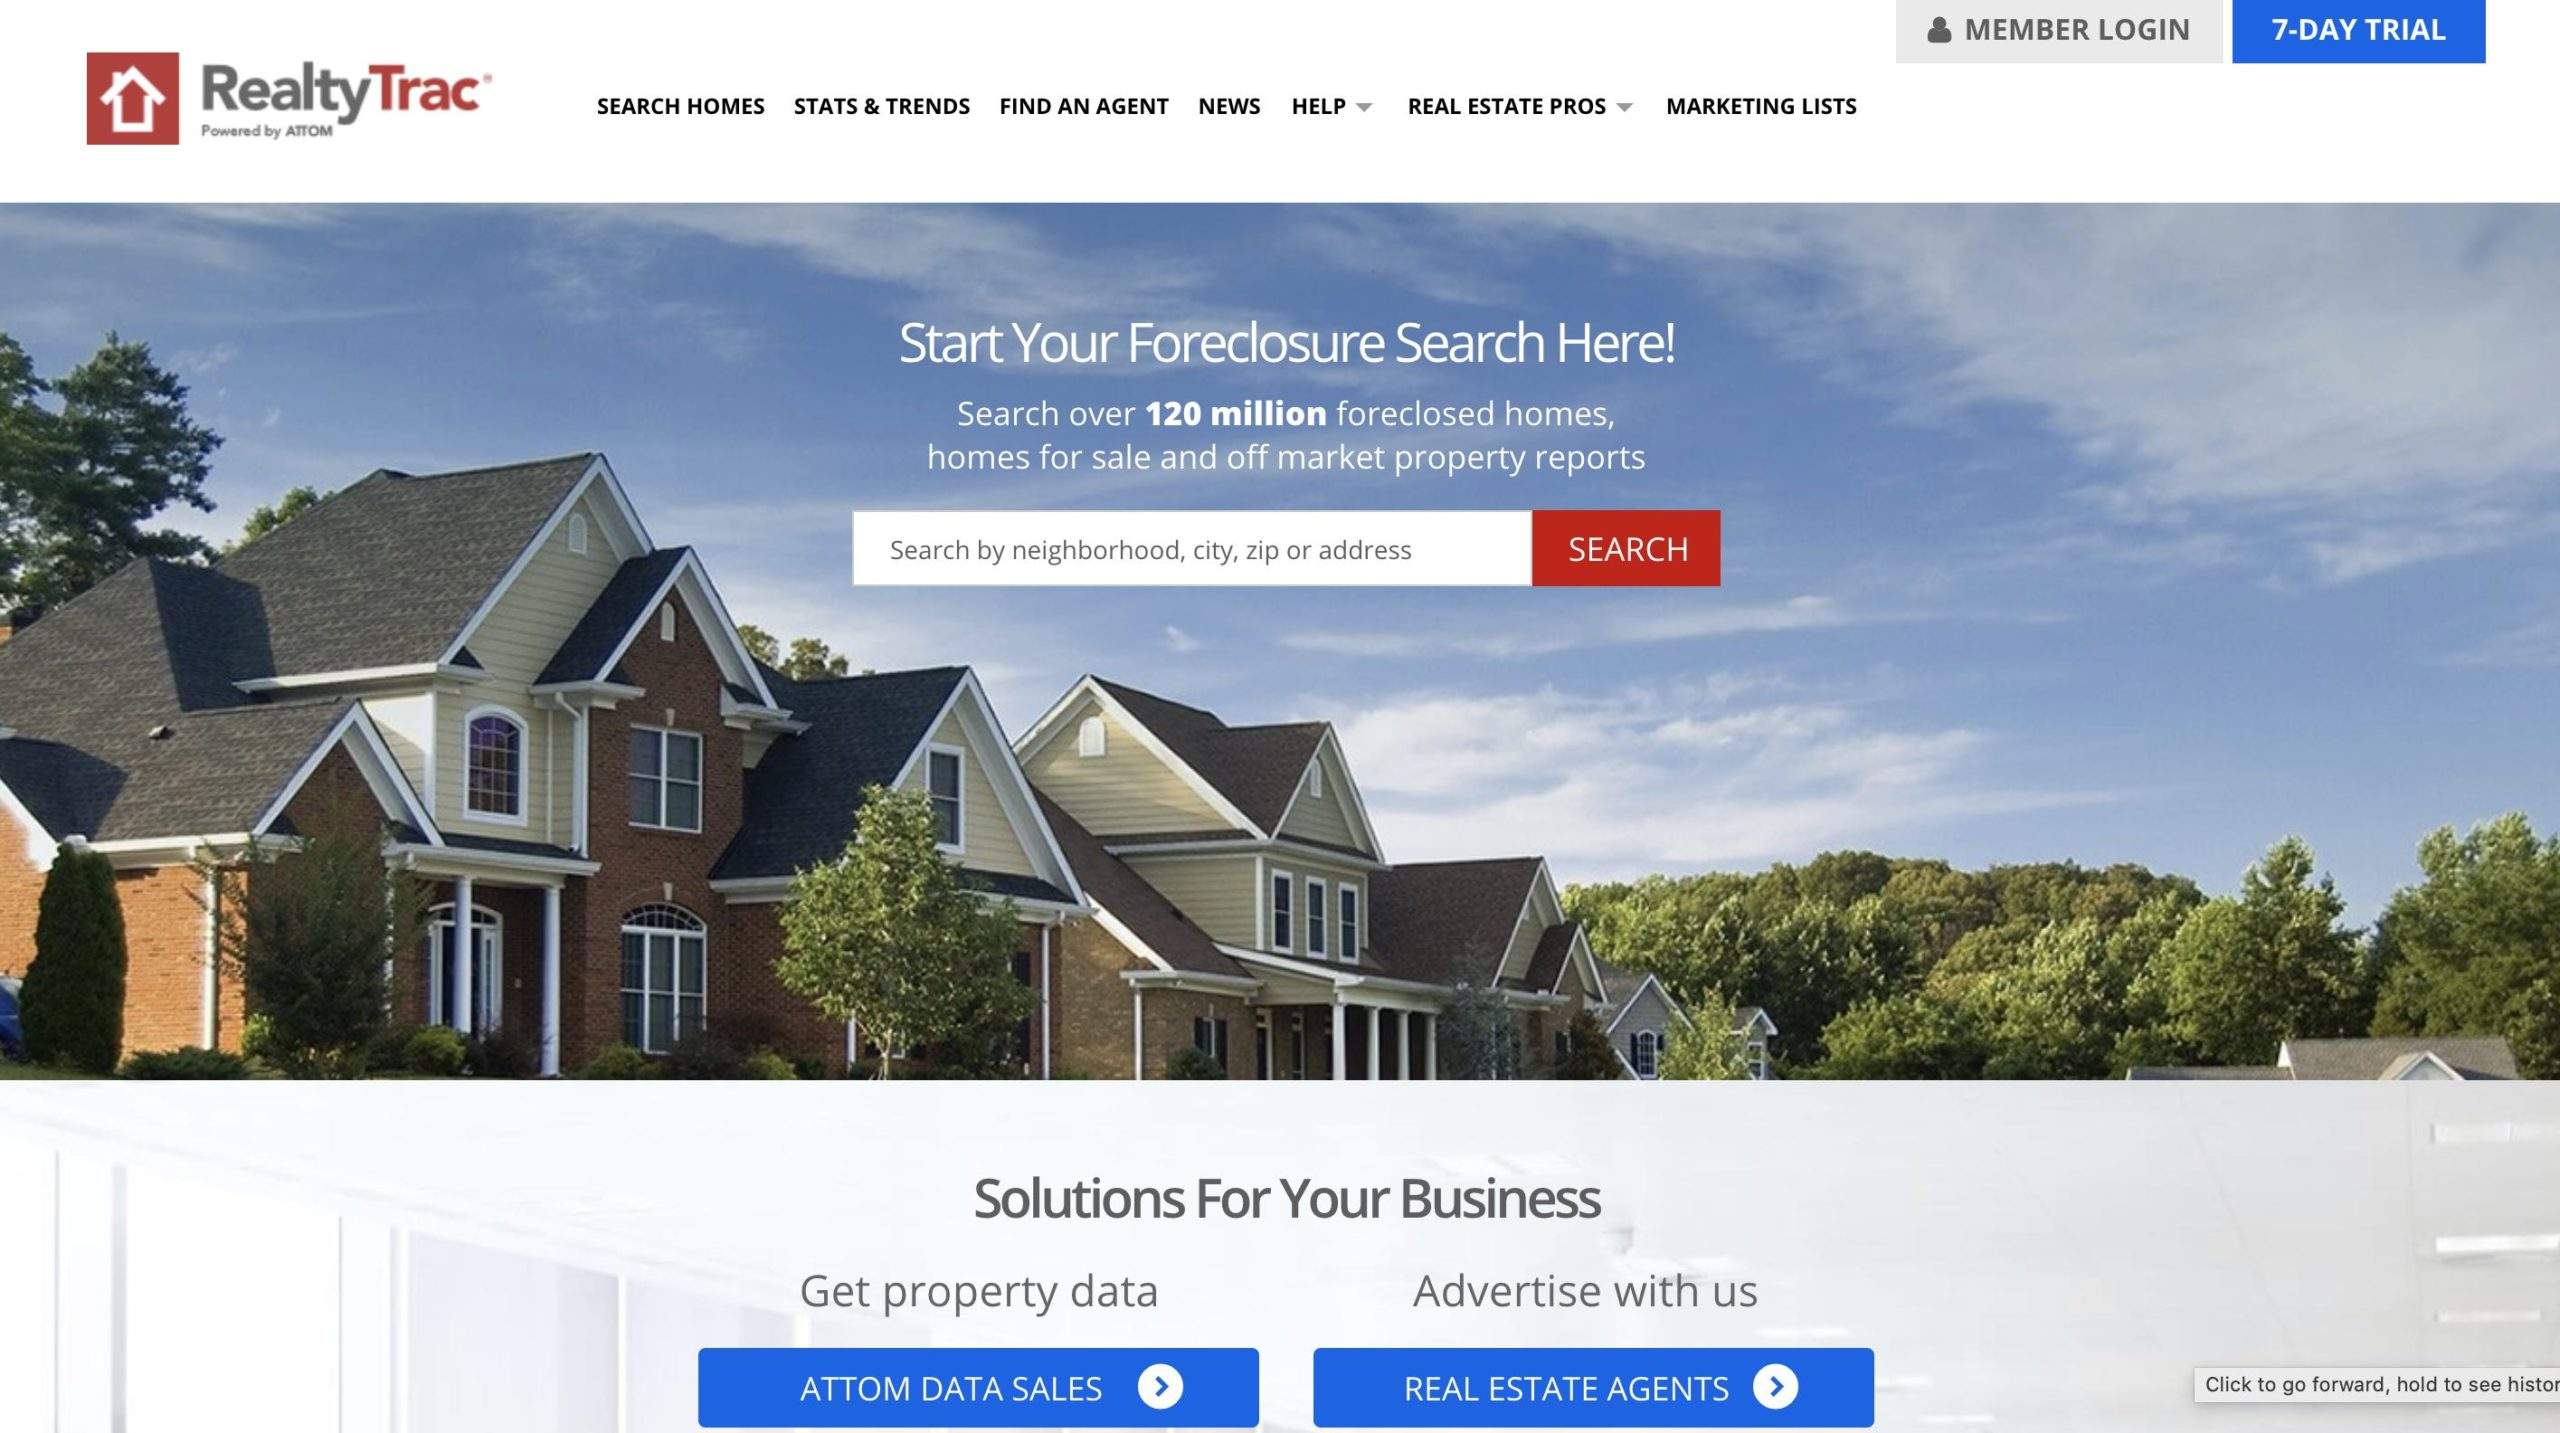 Realtytrac - Foreclosure Search Homes